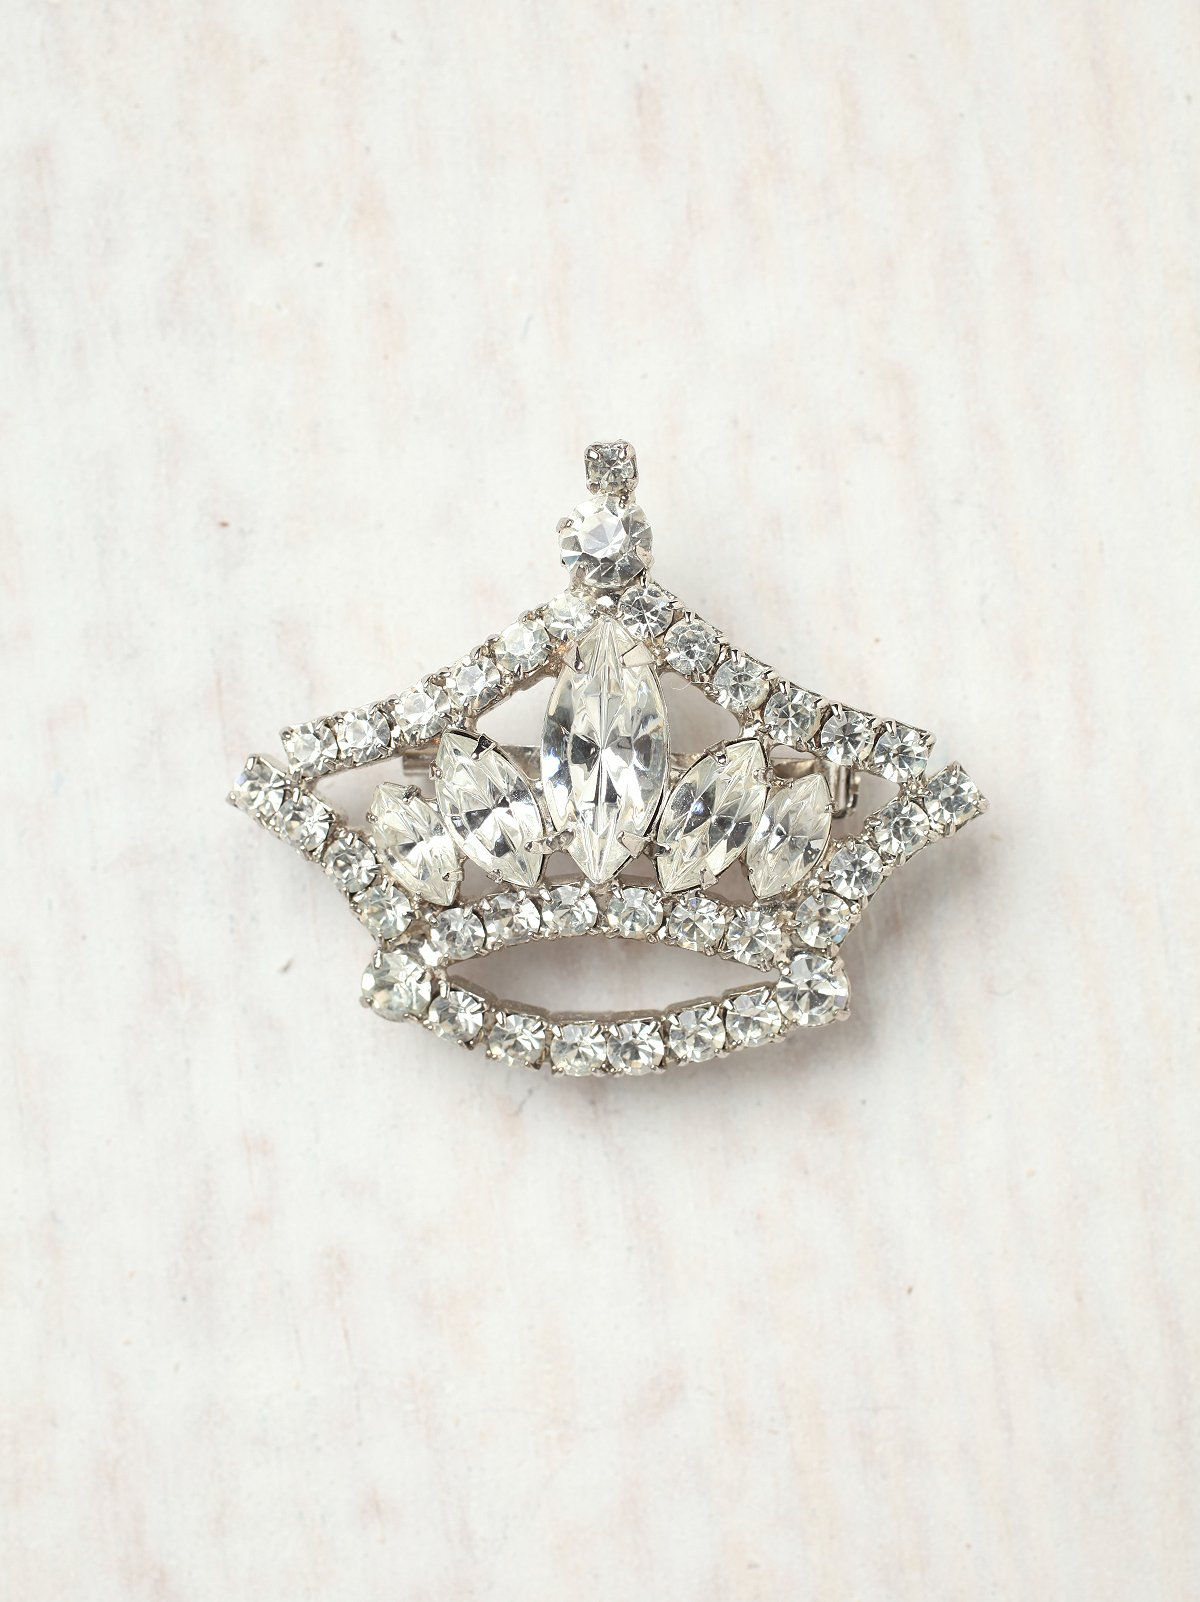 Vintage 1970s Rhinestone Crown Pin